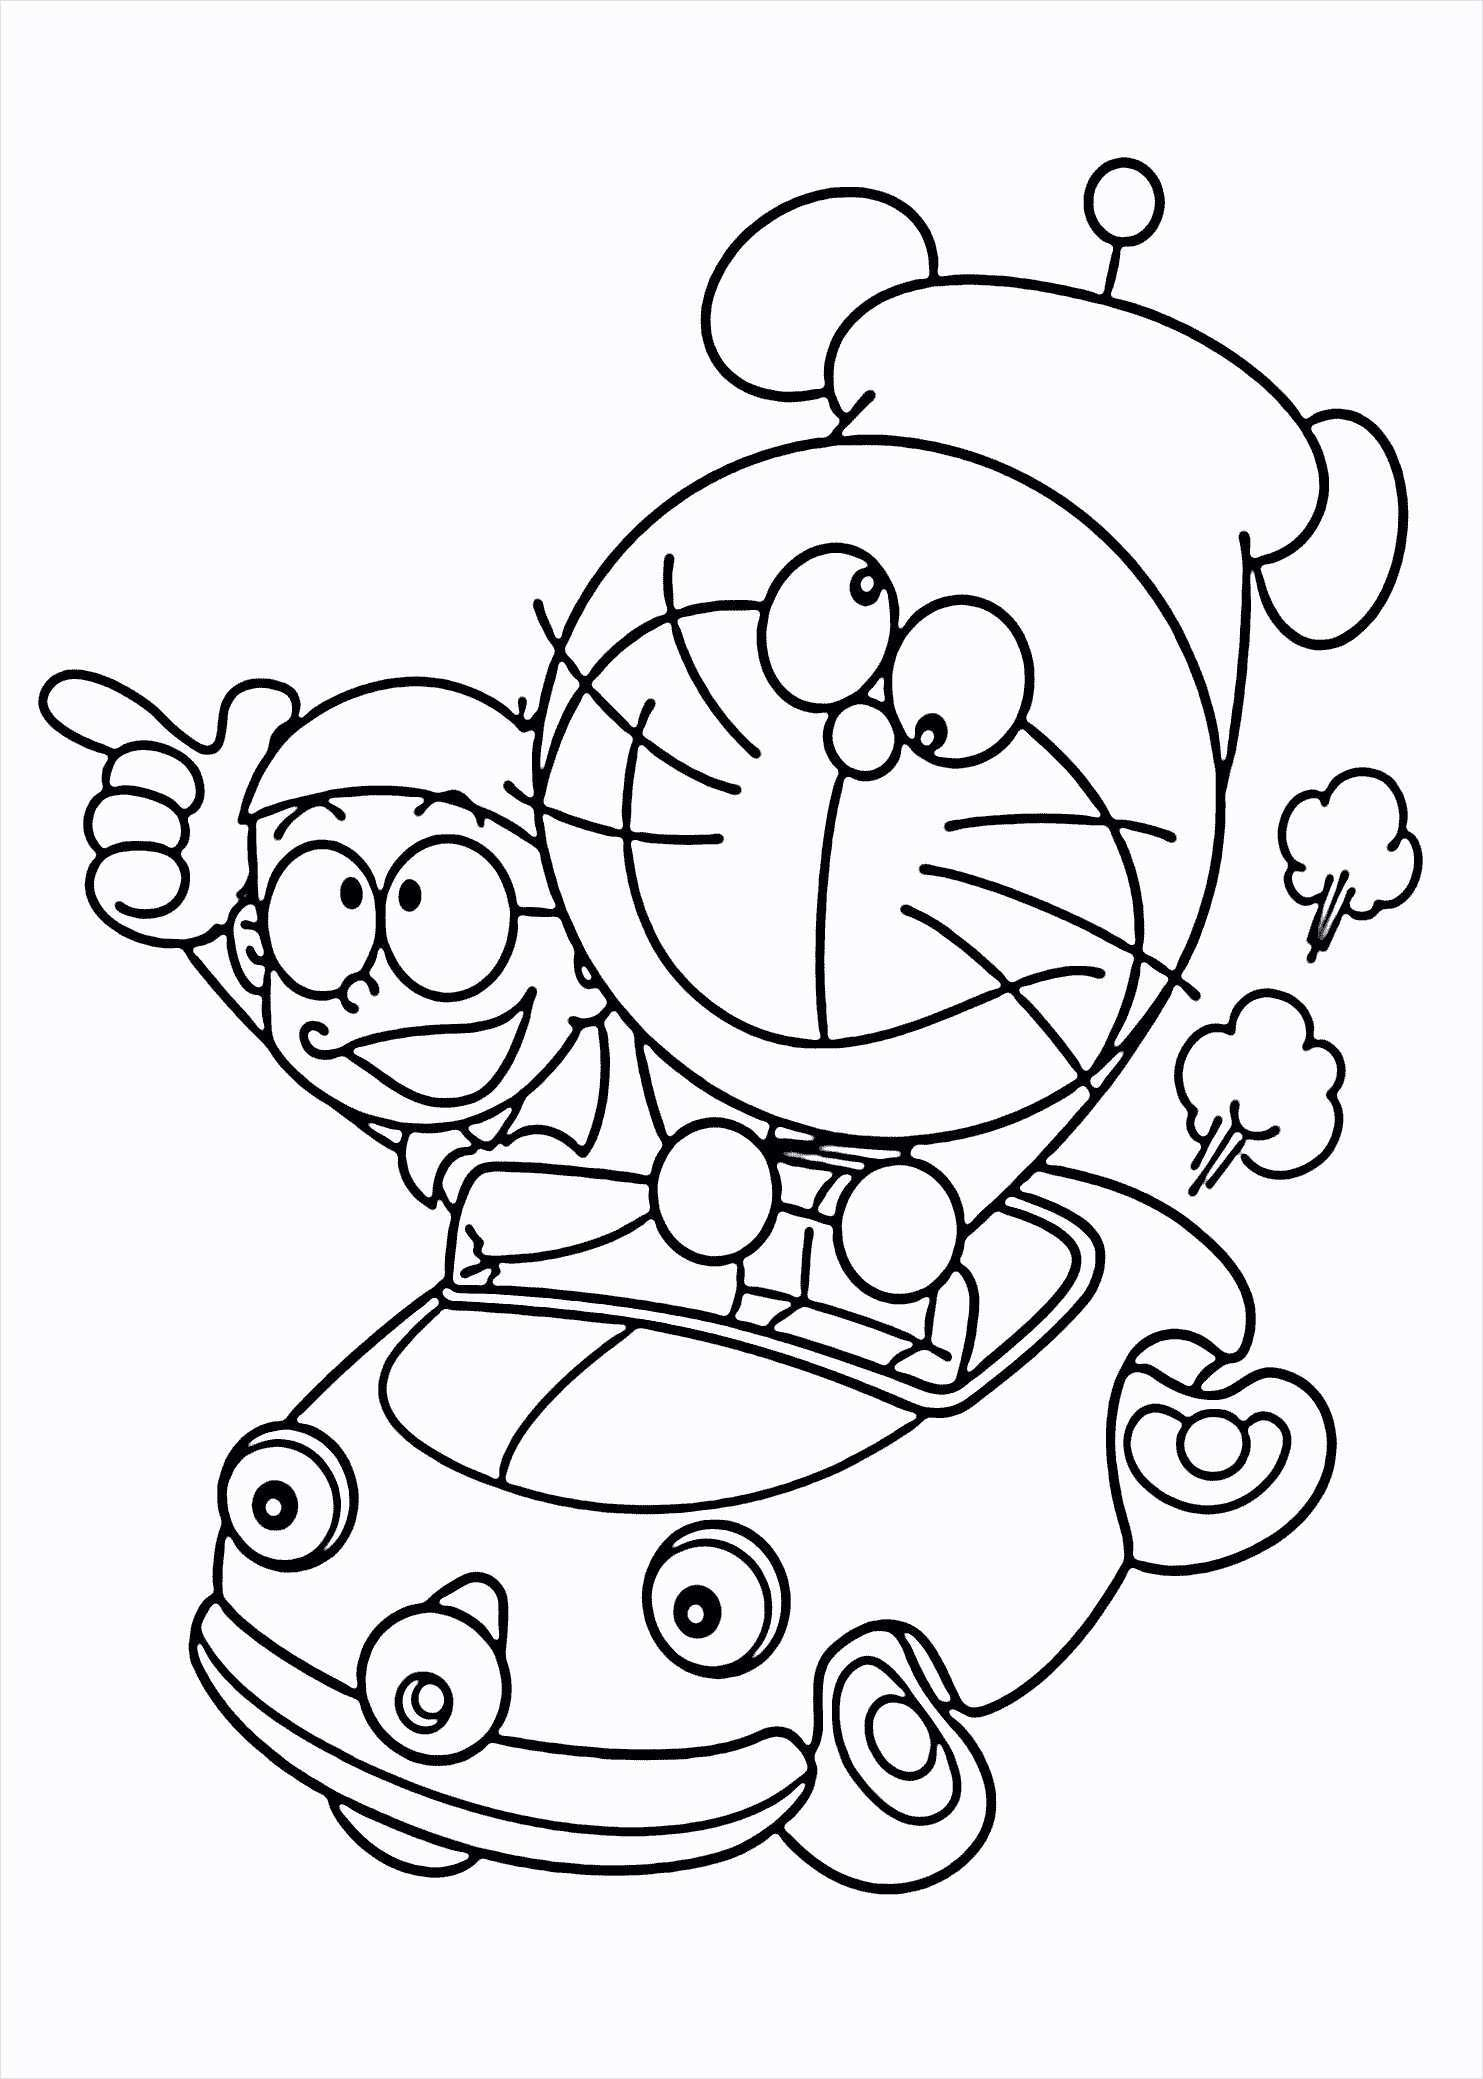 27+ Excellent Picture of Peppa Pig Printable Coloring ...